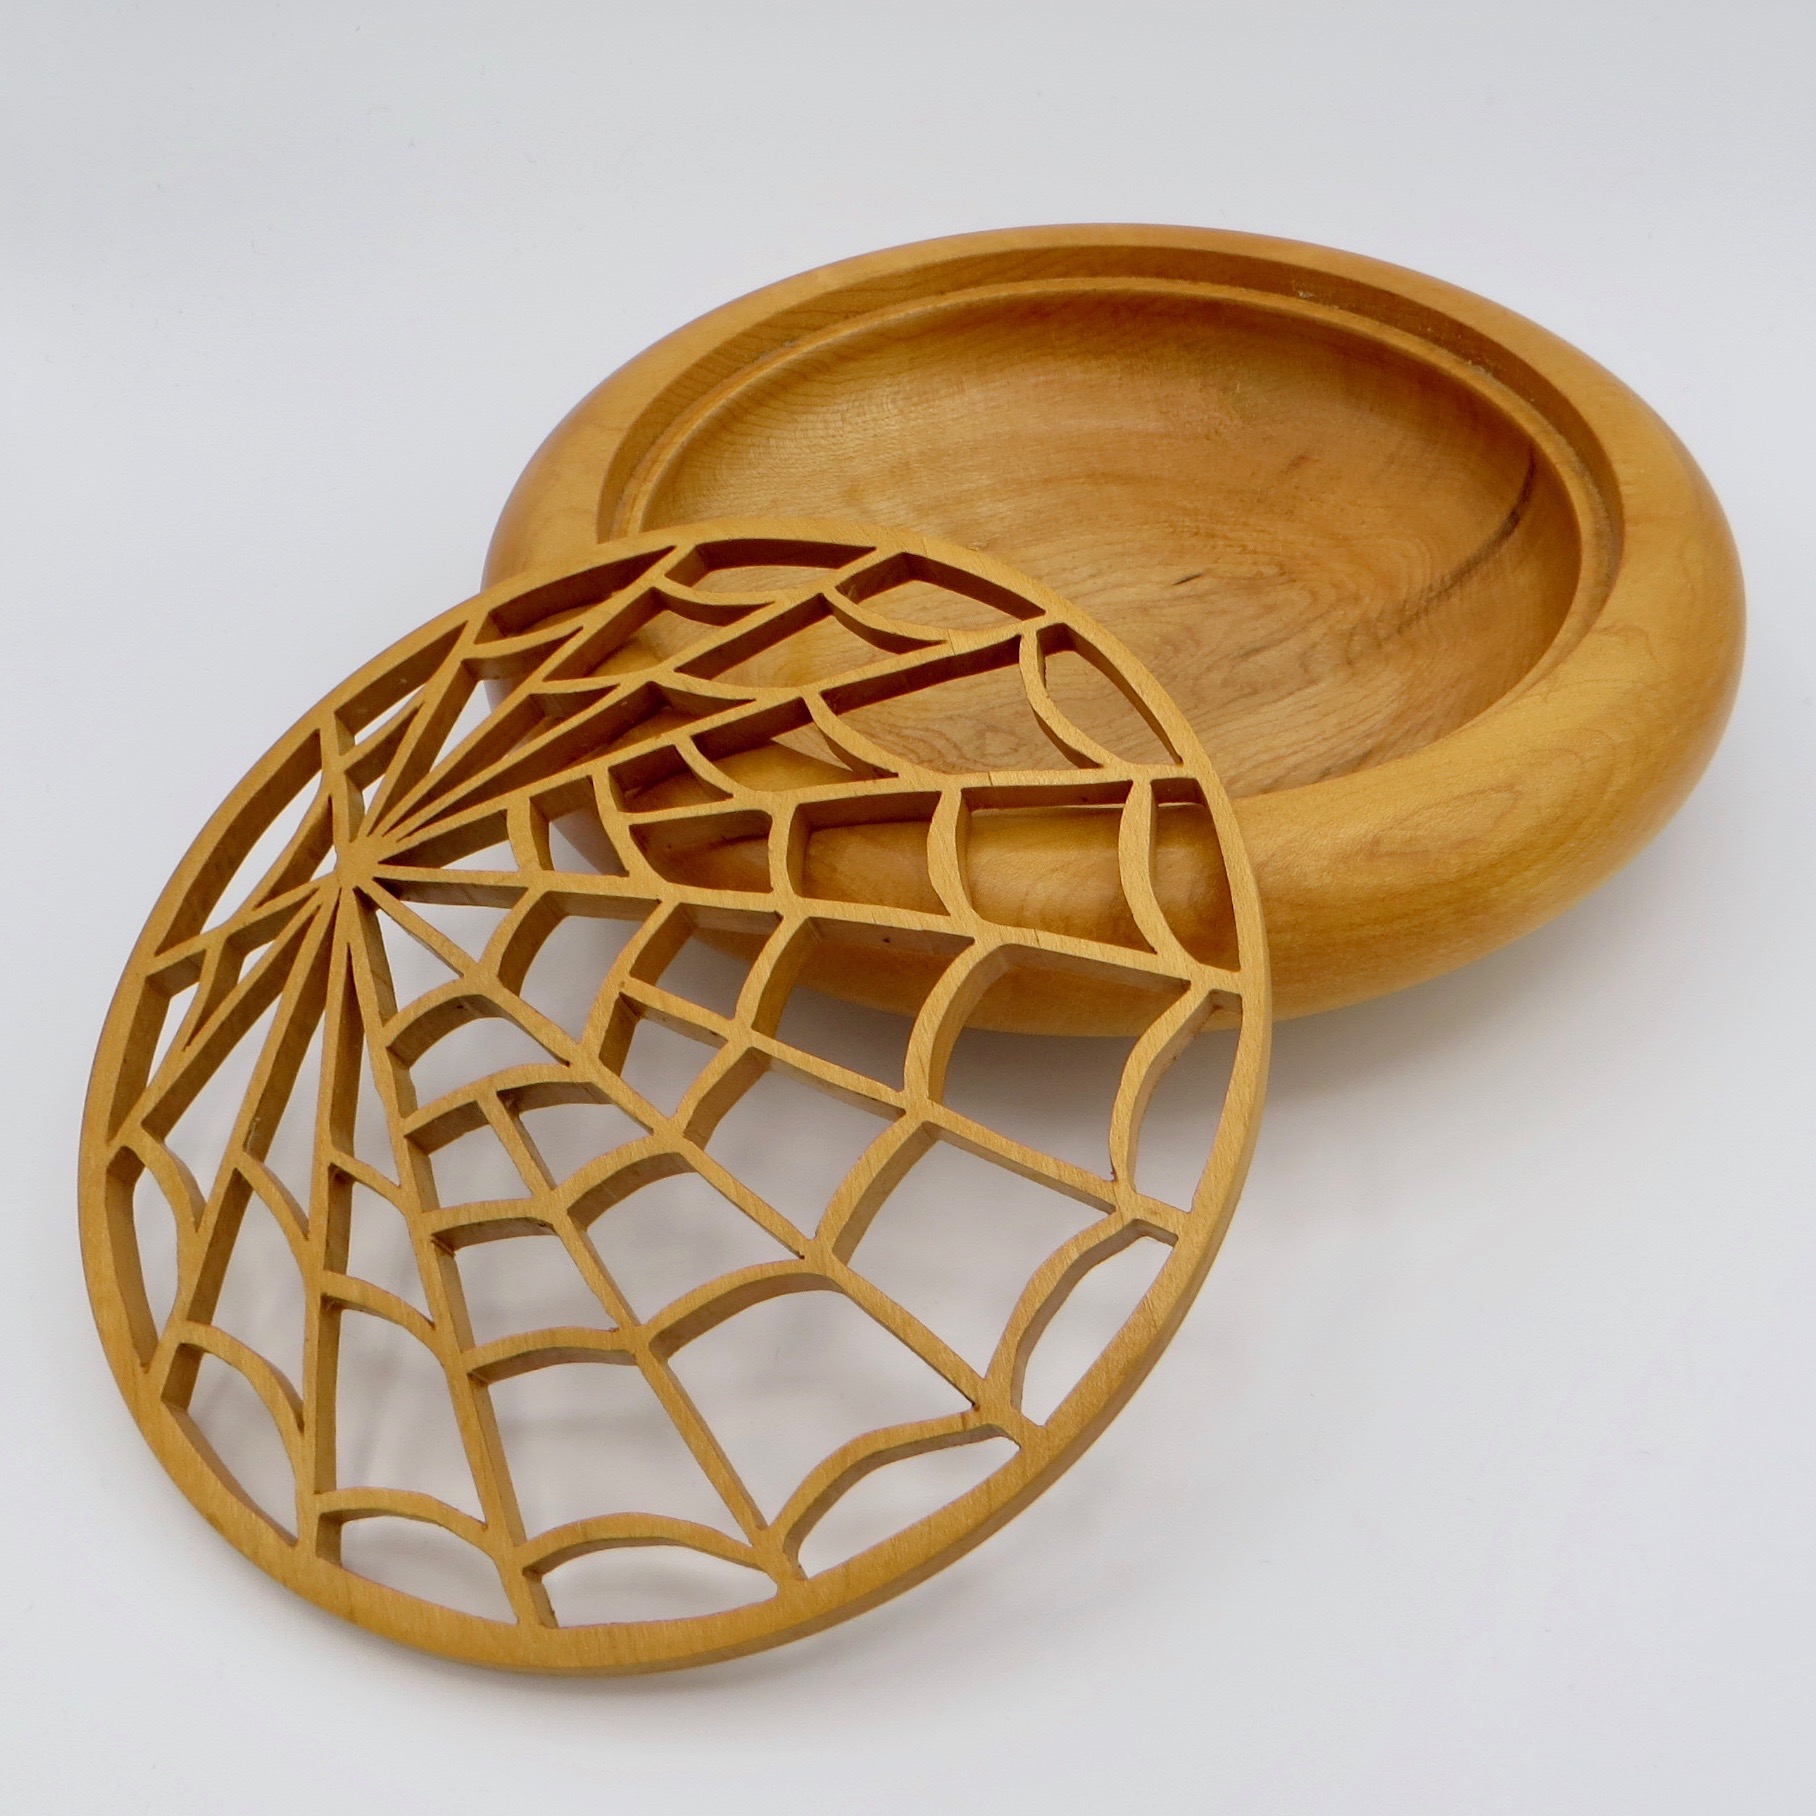 Spiderweb Pattern Wooden Bowl